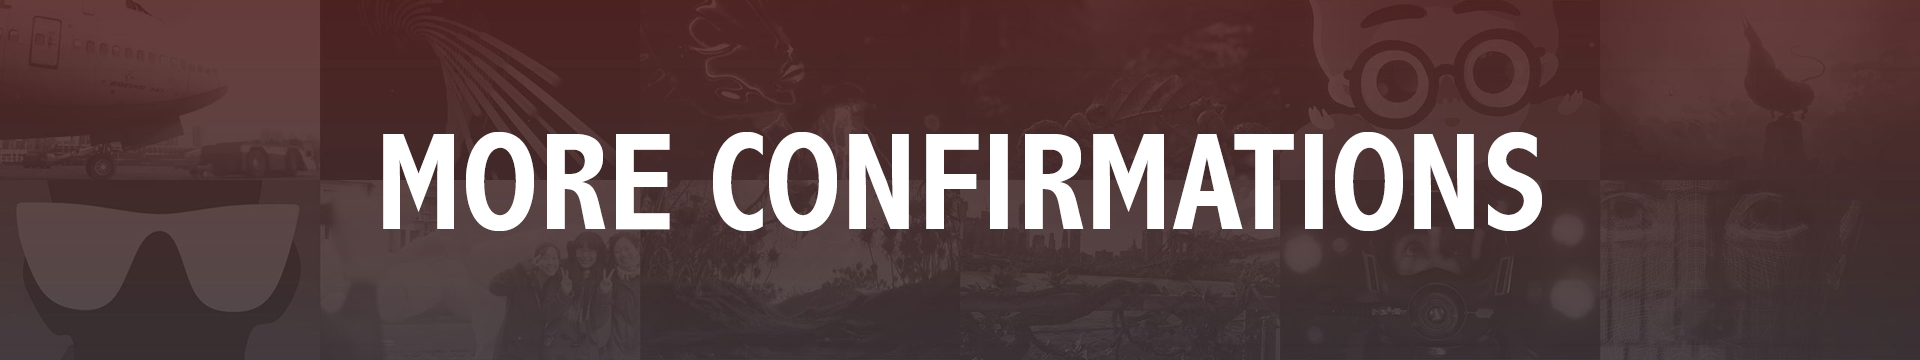 More Confirmations